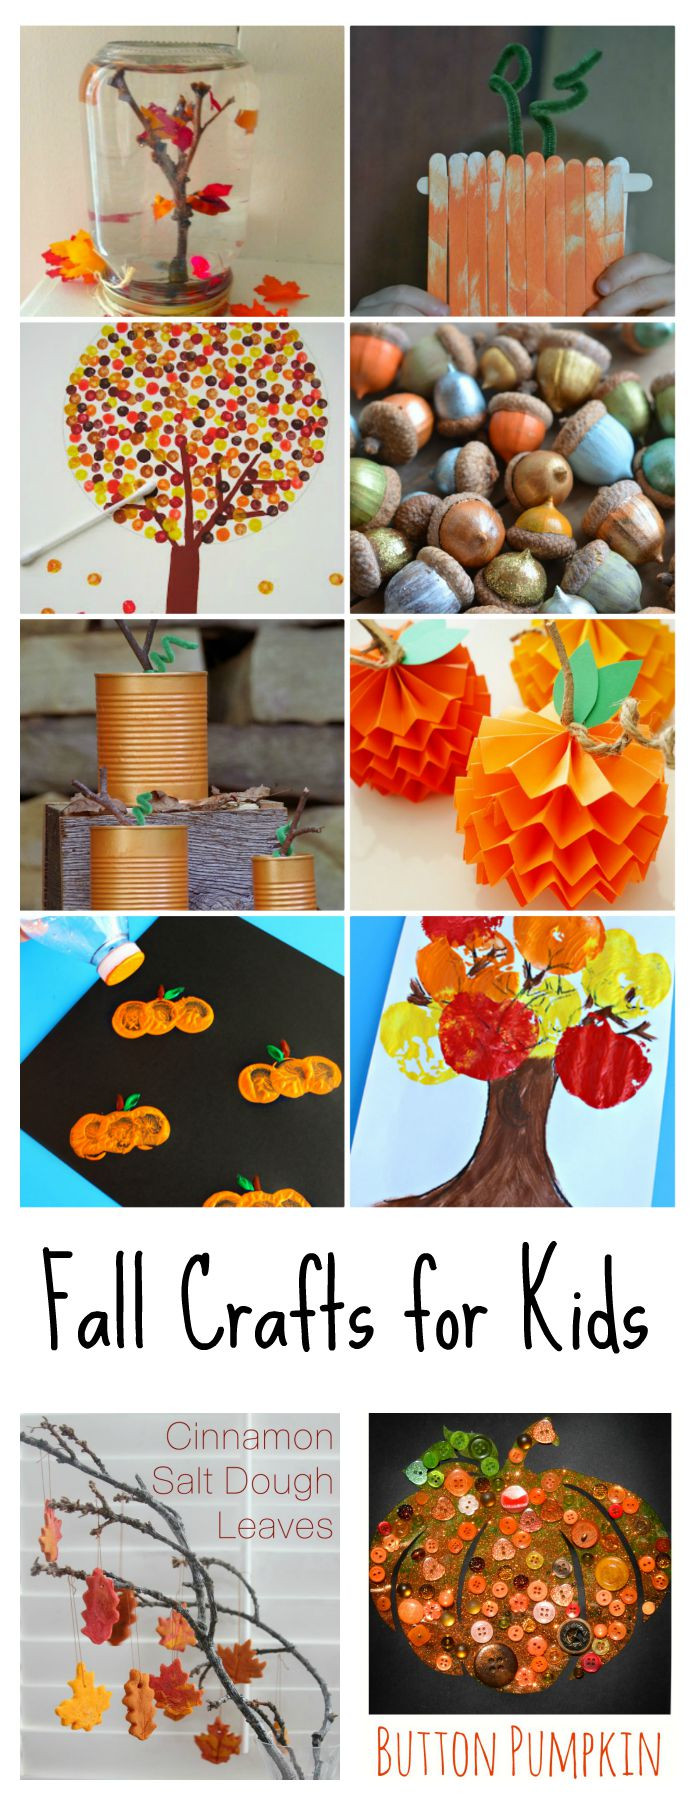 Best ideas about Fall Crafts Ideas For Kids . Save or Pin Fall Crafts for Kids The Idea Room Now.